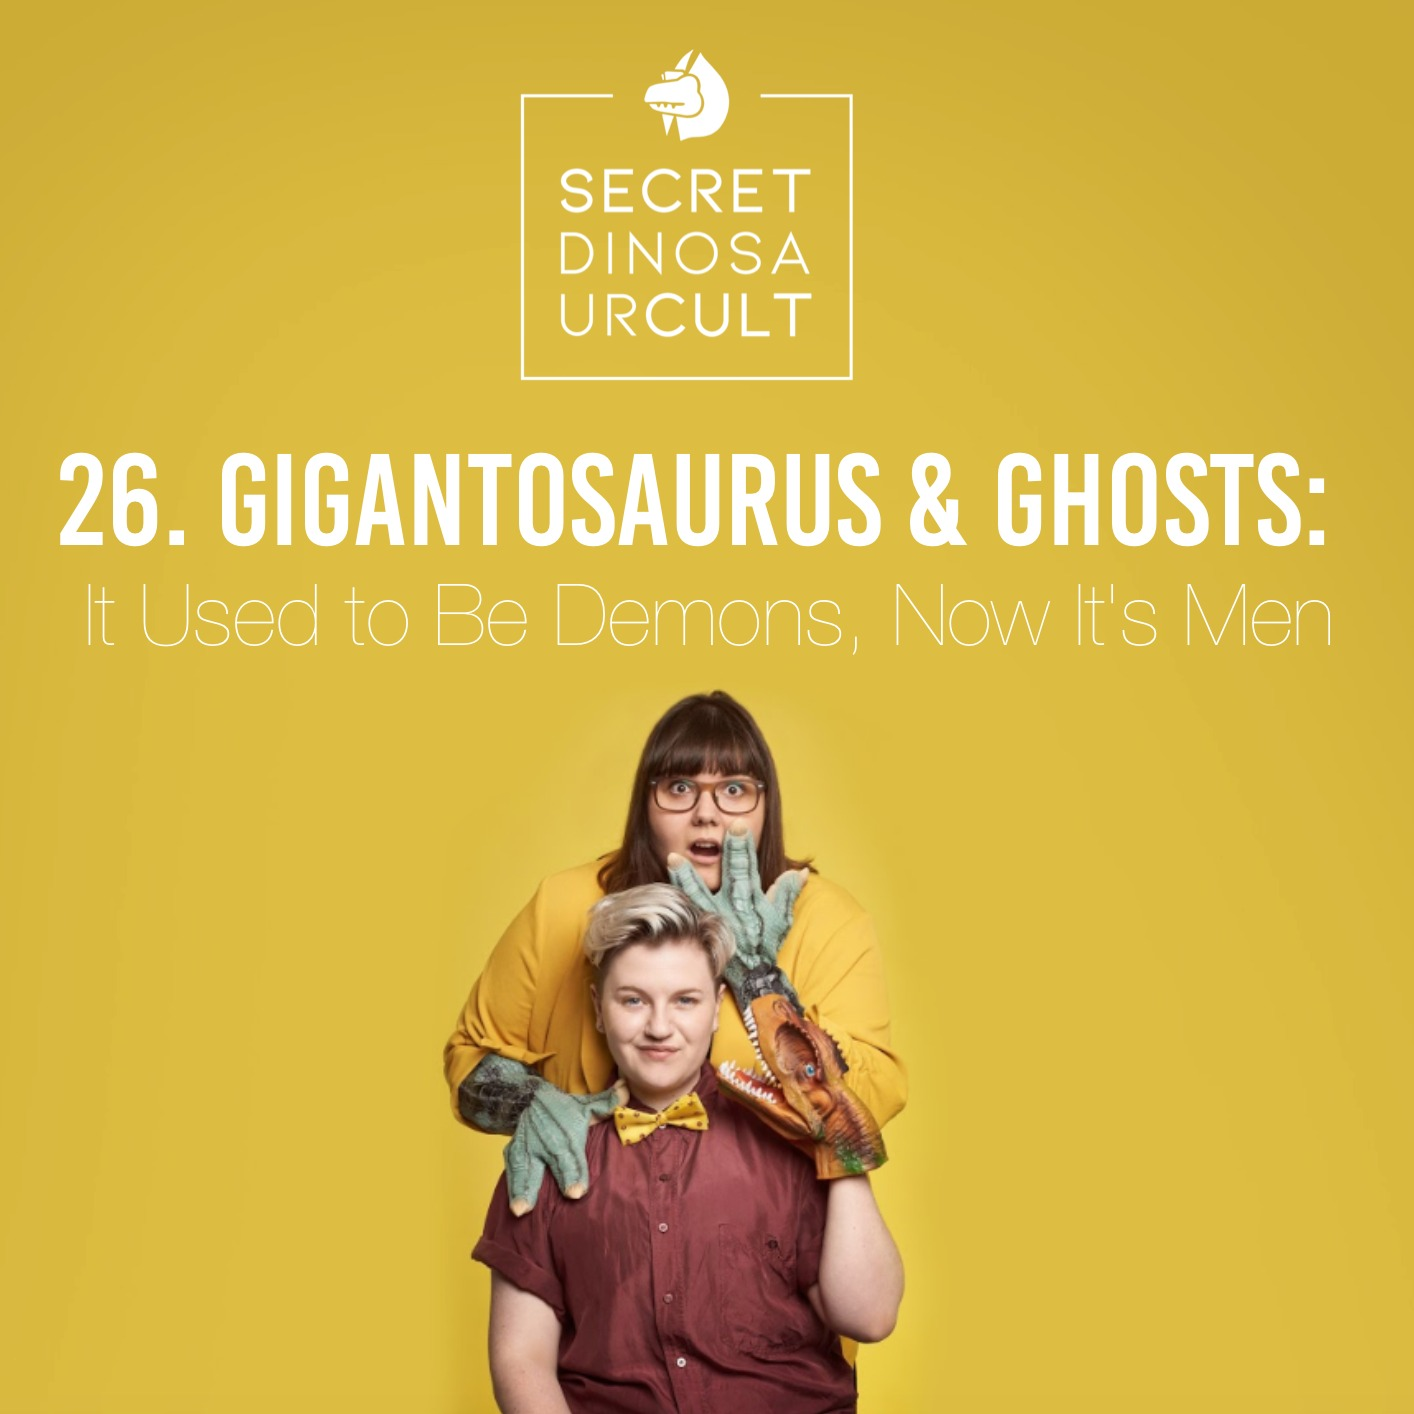 26. Gigantosaurus & Ghosts: It Used to Be Demons, Now It's Men